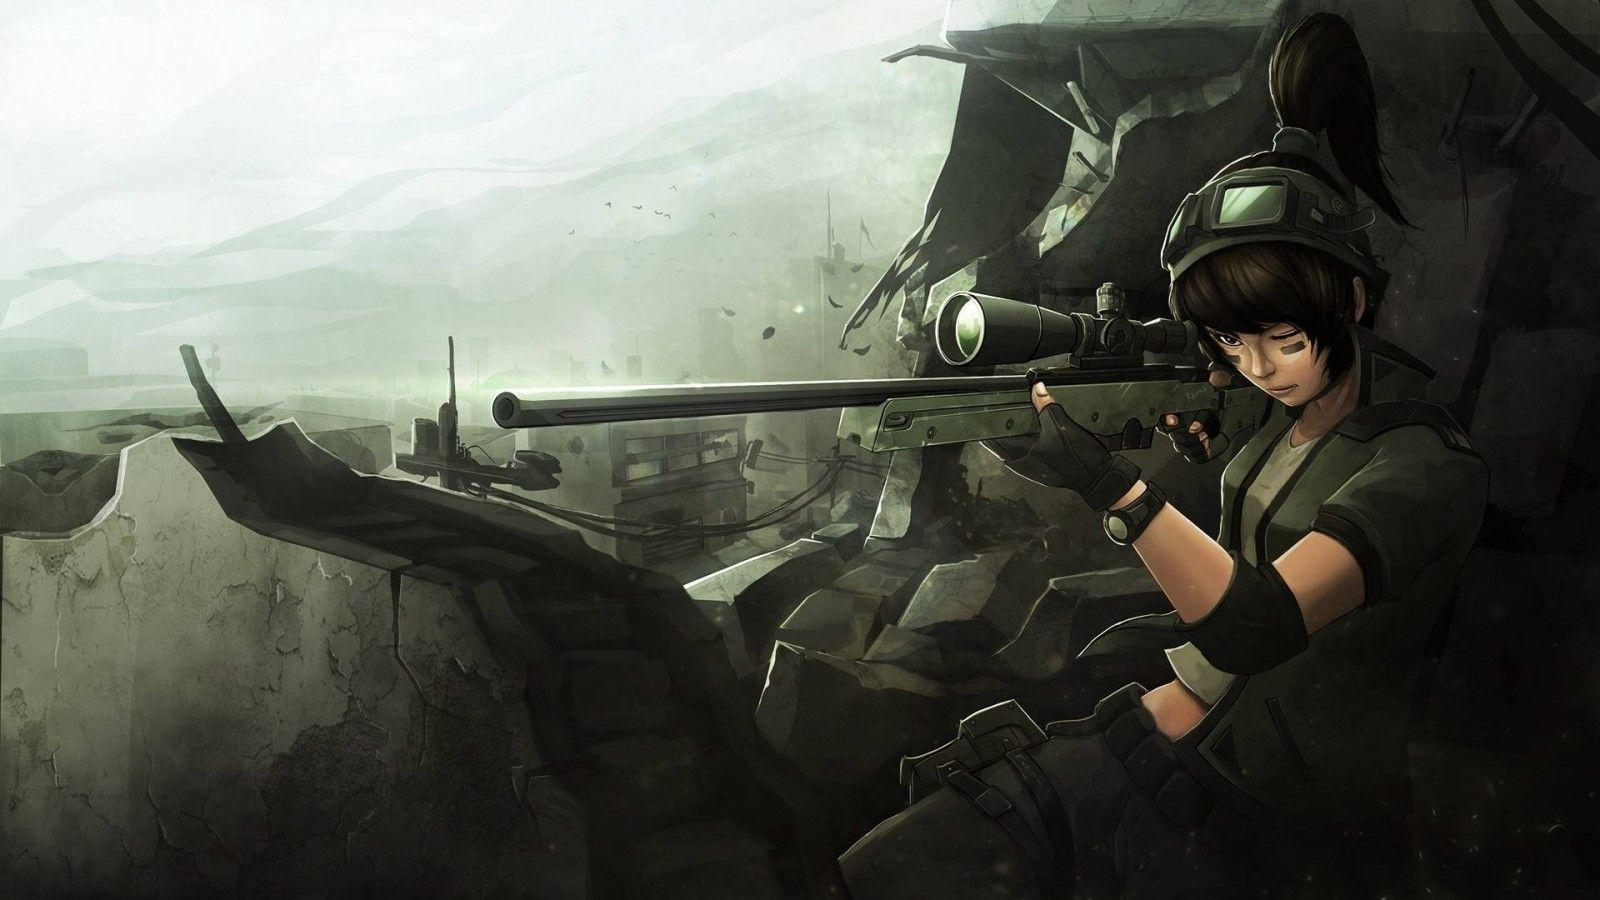 Anime soldier wallpapers wallpaper cave - Anime war wallpaper ...